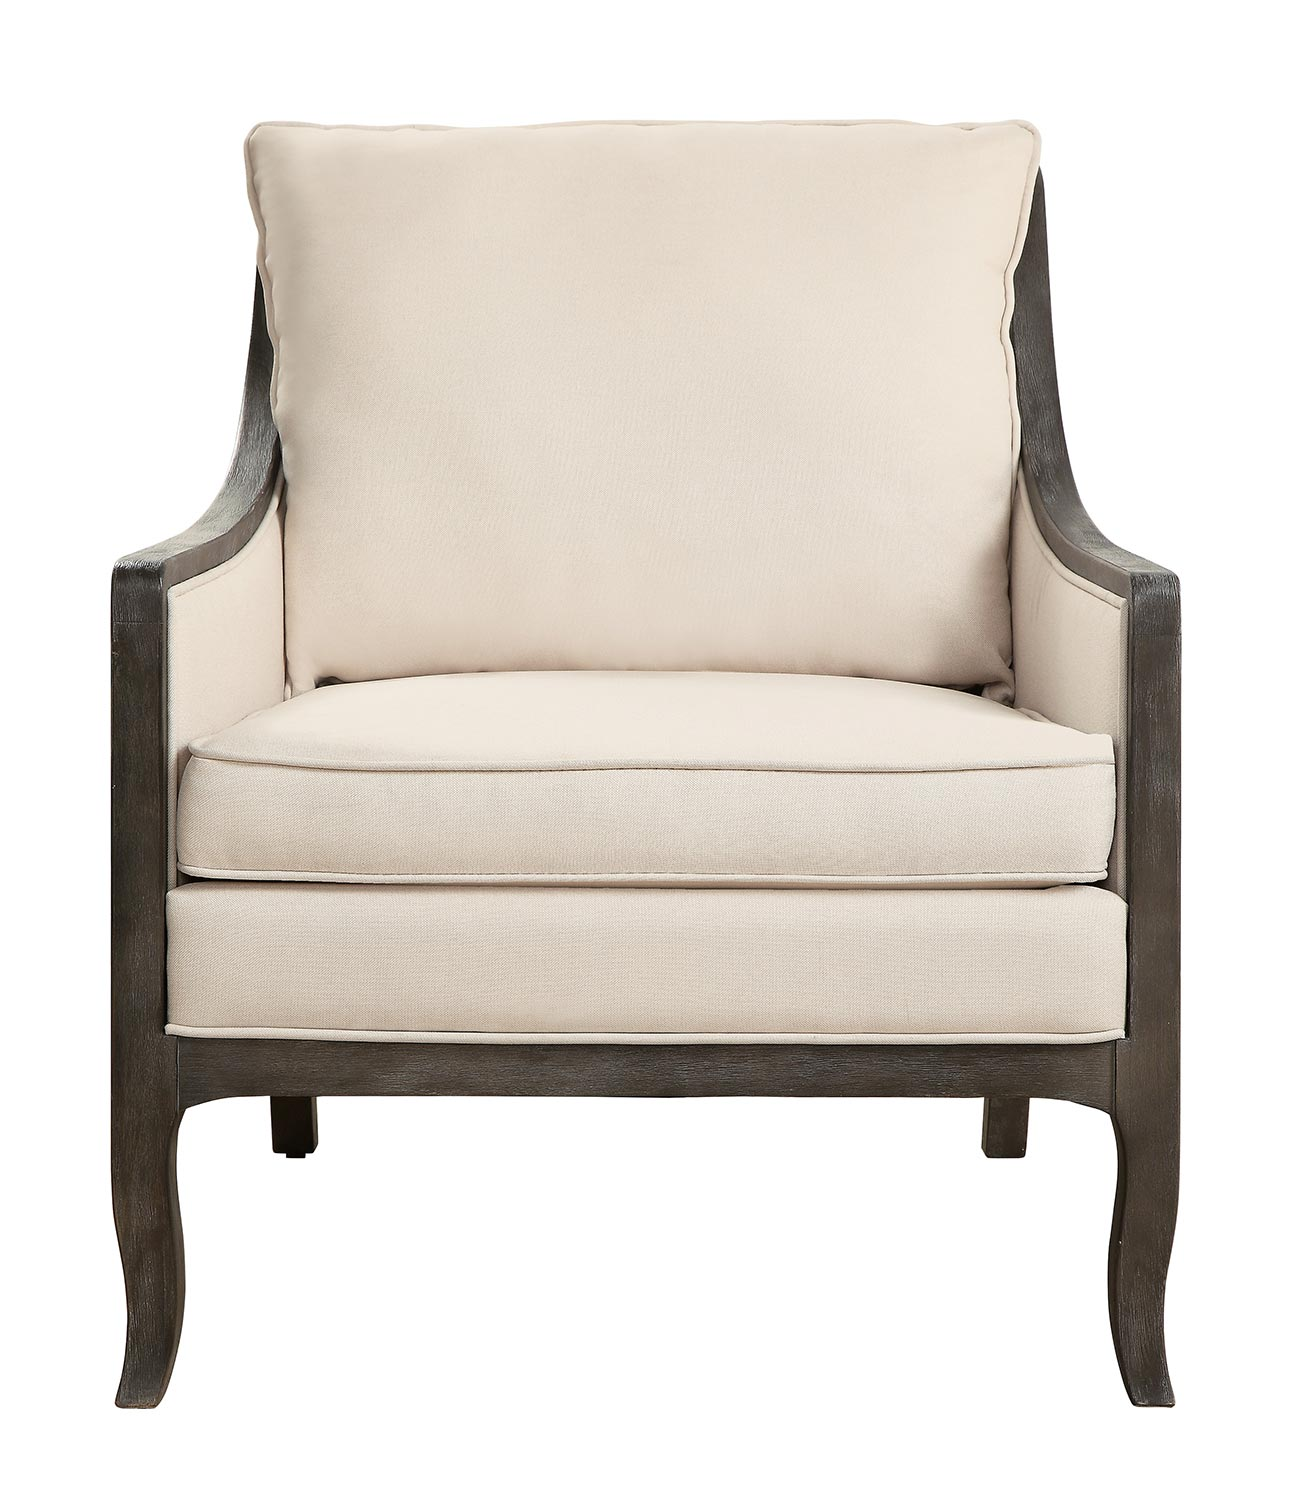 Homelegance Ceylon Accent Chair - Beige